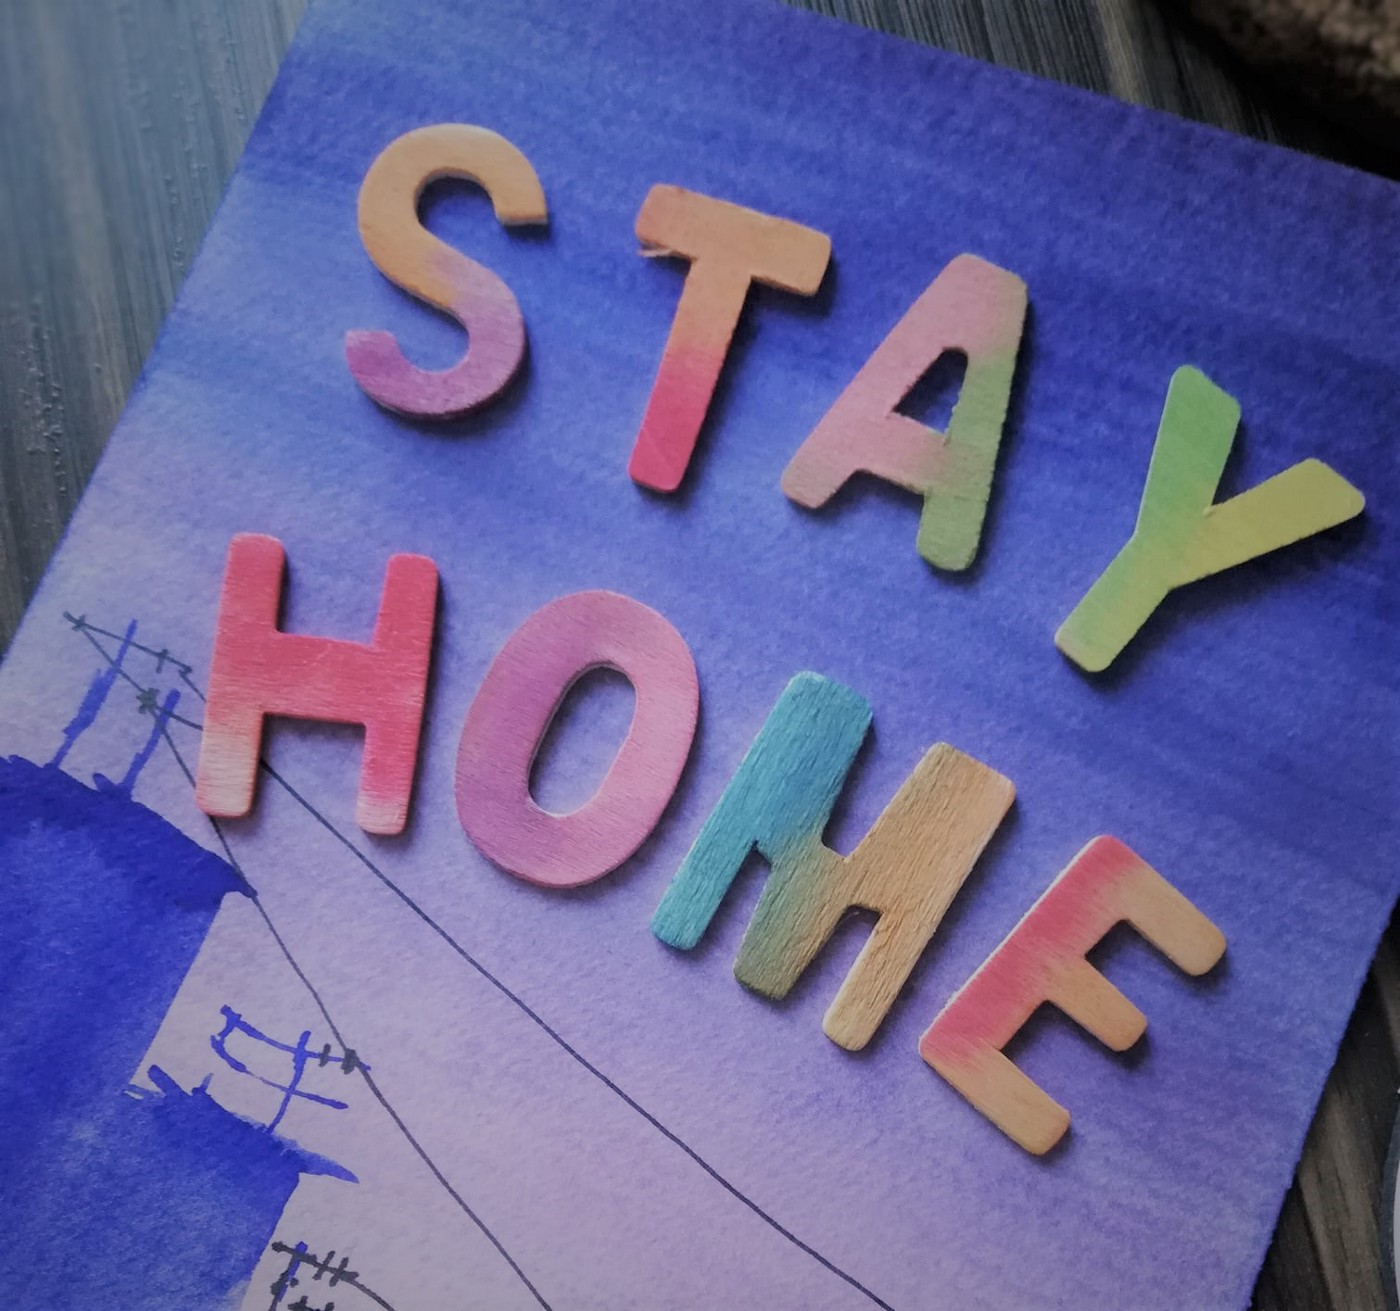 Photo by Author—Painted at the start of Msia's Lockdown, By Ching Ching, #stayhome